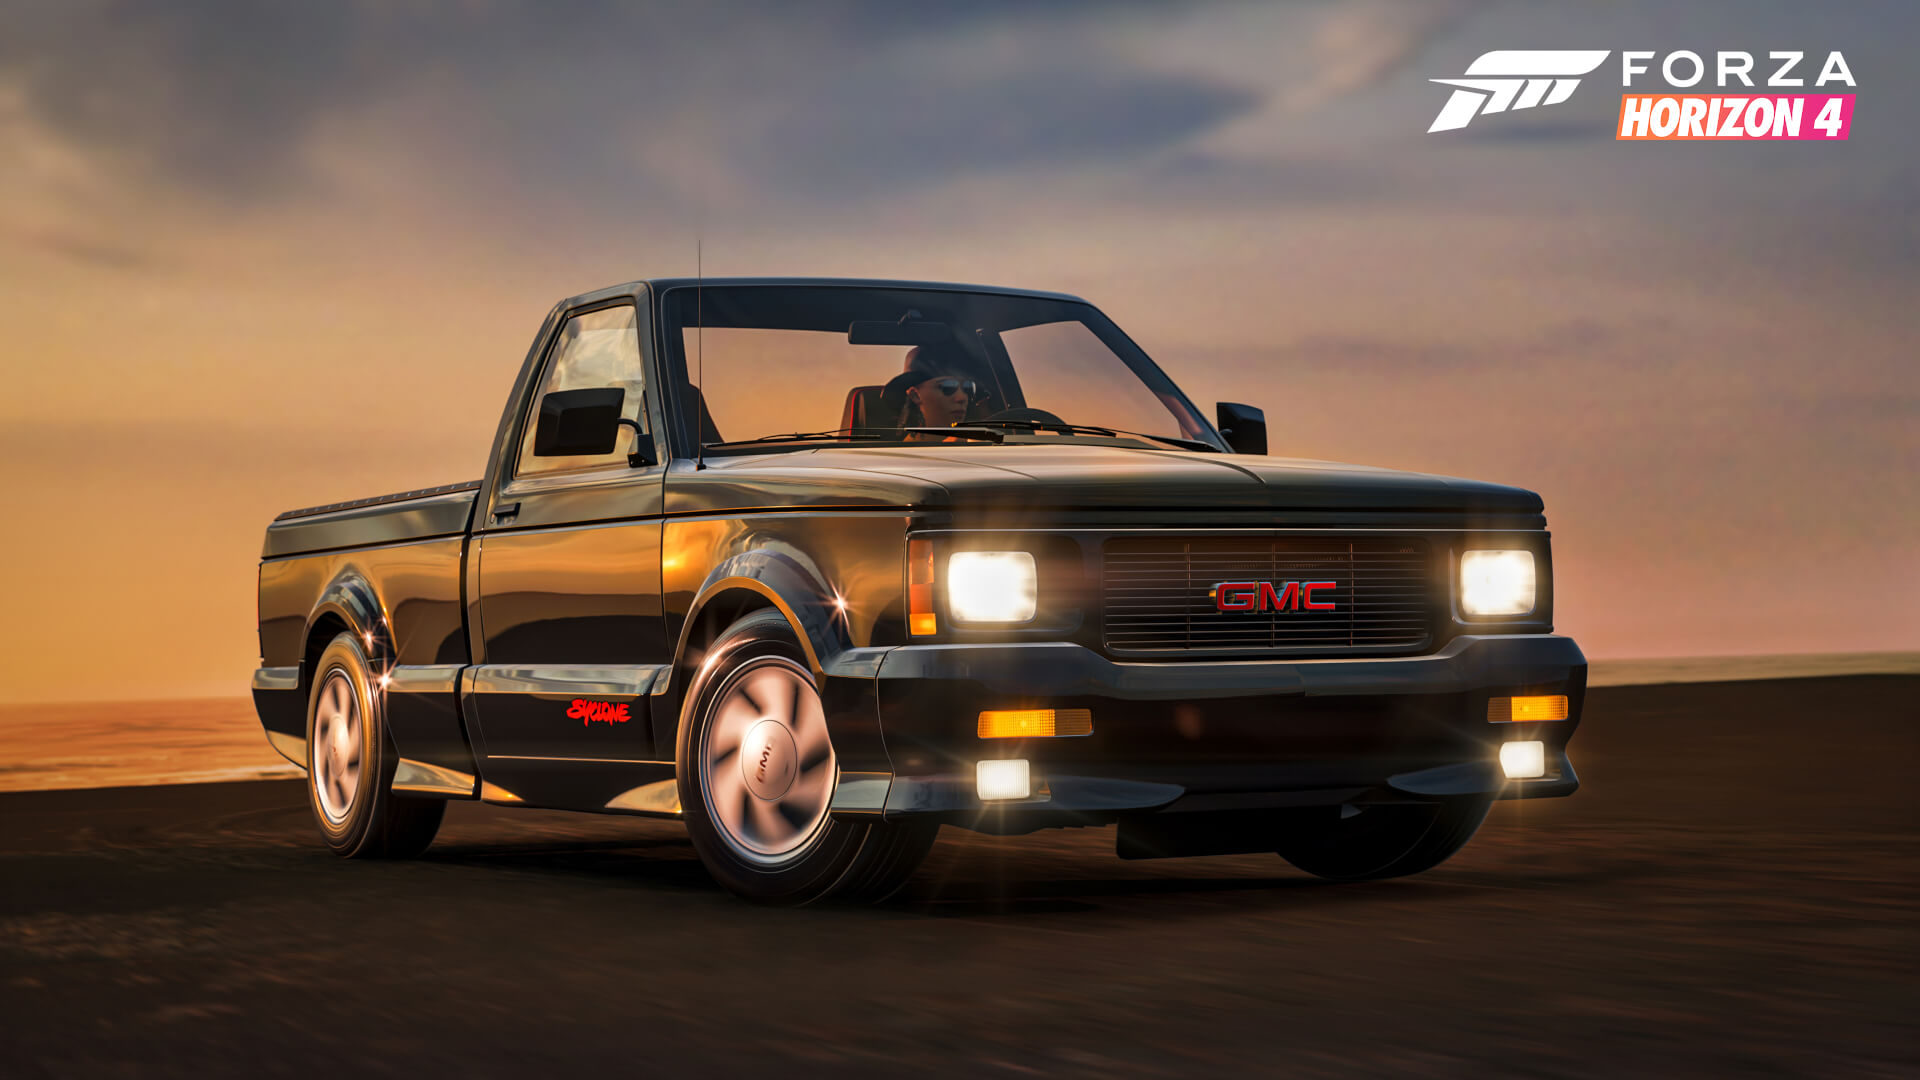 Forza Horizon 4 Series 28 Update Now Available ...